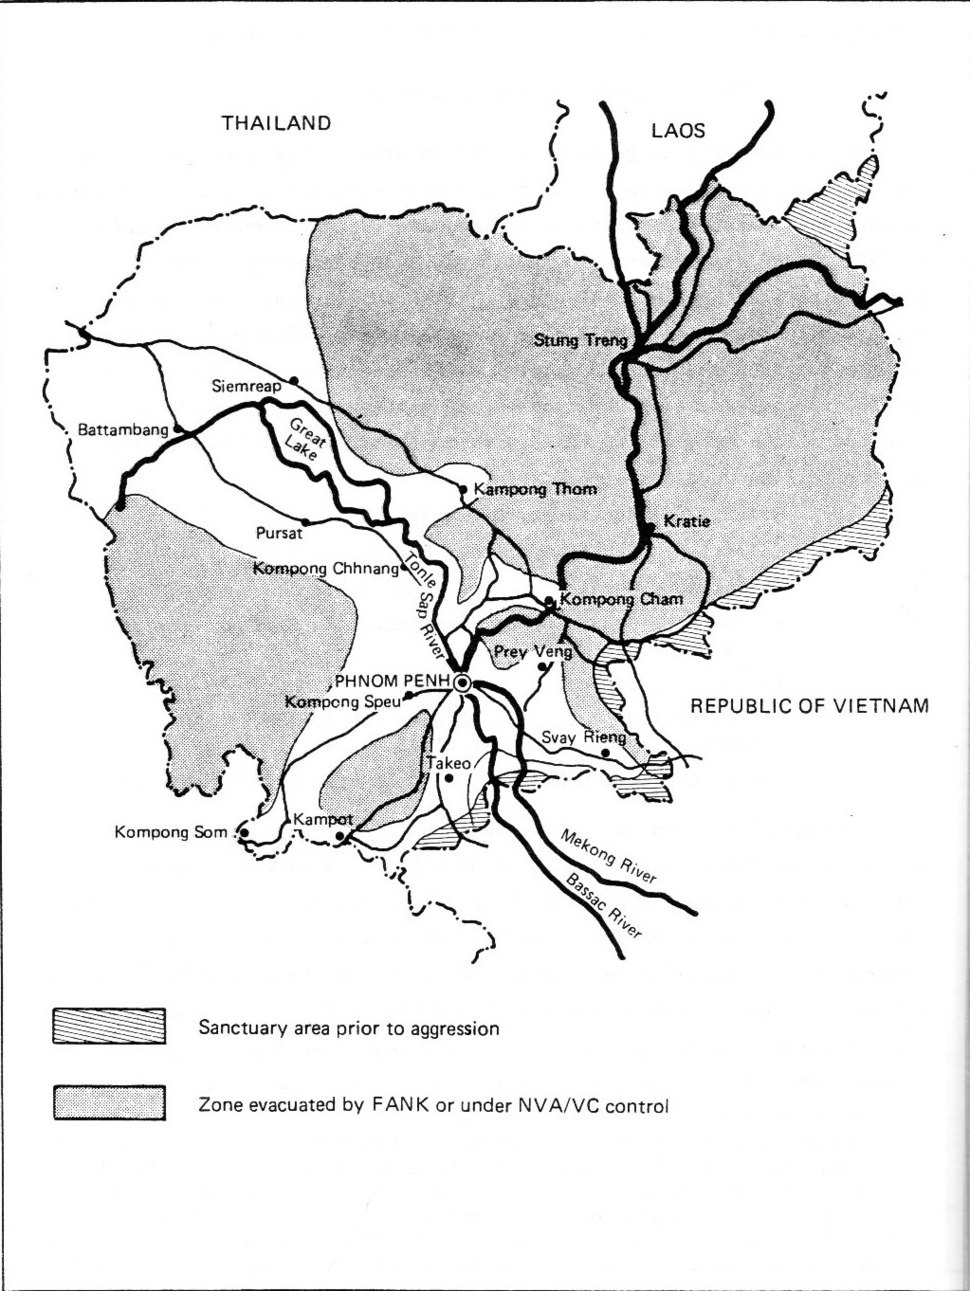 Areas of Cambodia under government control August 1970